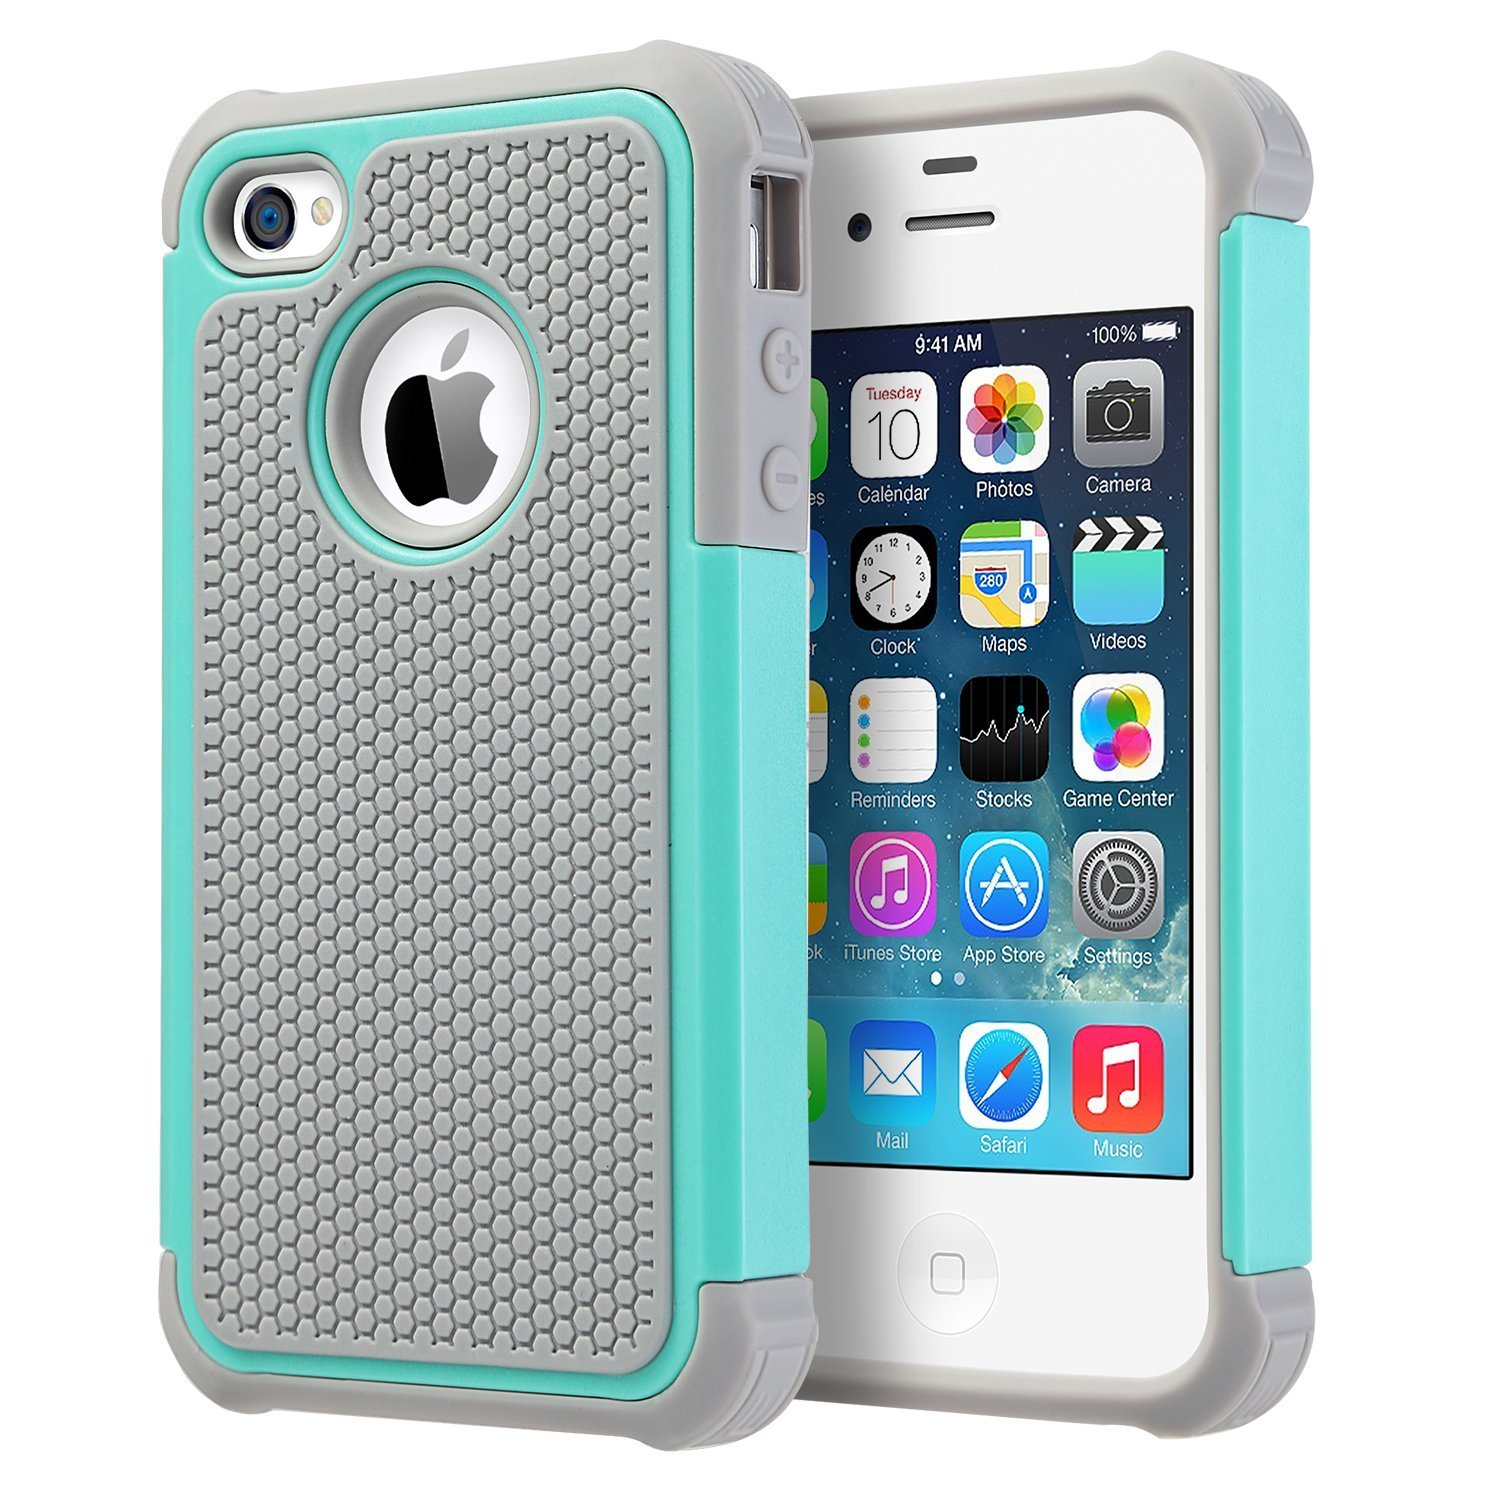 iPhone 4 Case, iPhone 4S Case,UARMOR Hybrid Dual Layer Protective Case Cover with Hard Plastic and Soft Silicone for iPhone 4S & iPhone 4 - Mint Green+Gray